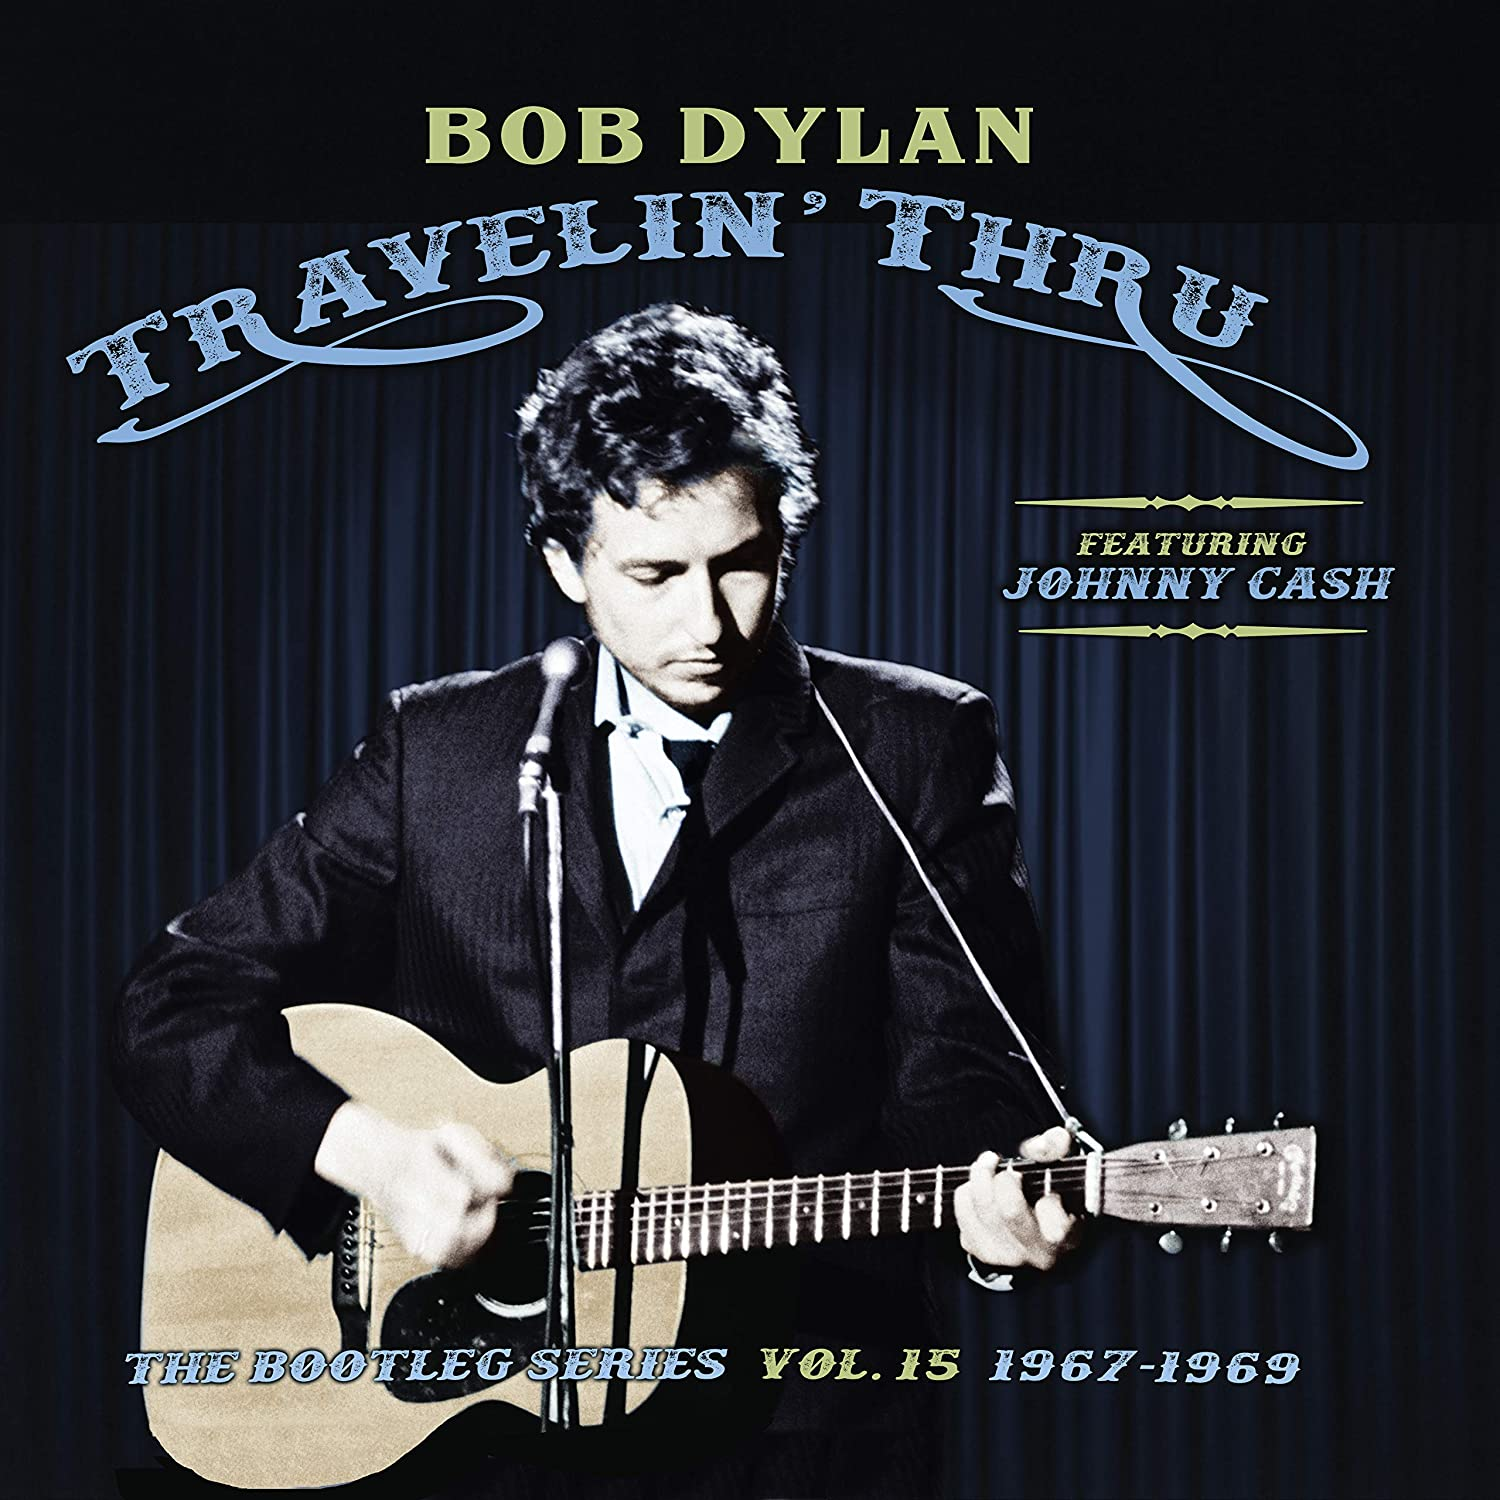 Buy BOB DYLAN – The Bootleg Series Vol 15: Travelin' Thru, 1967-1969 New or Used via Amazon